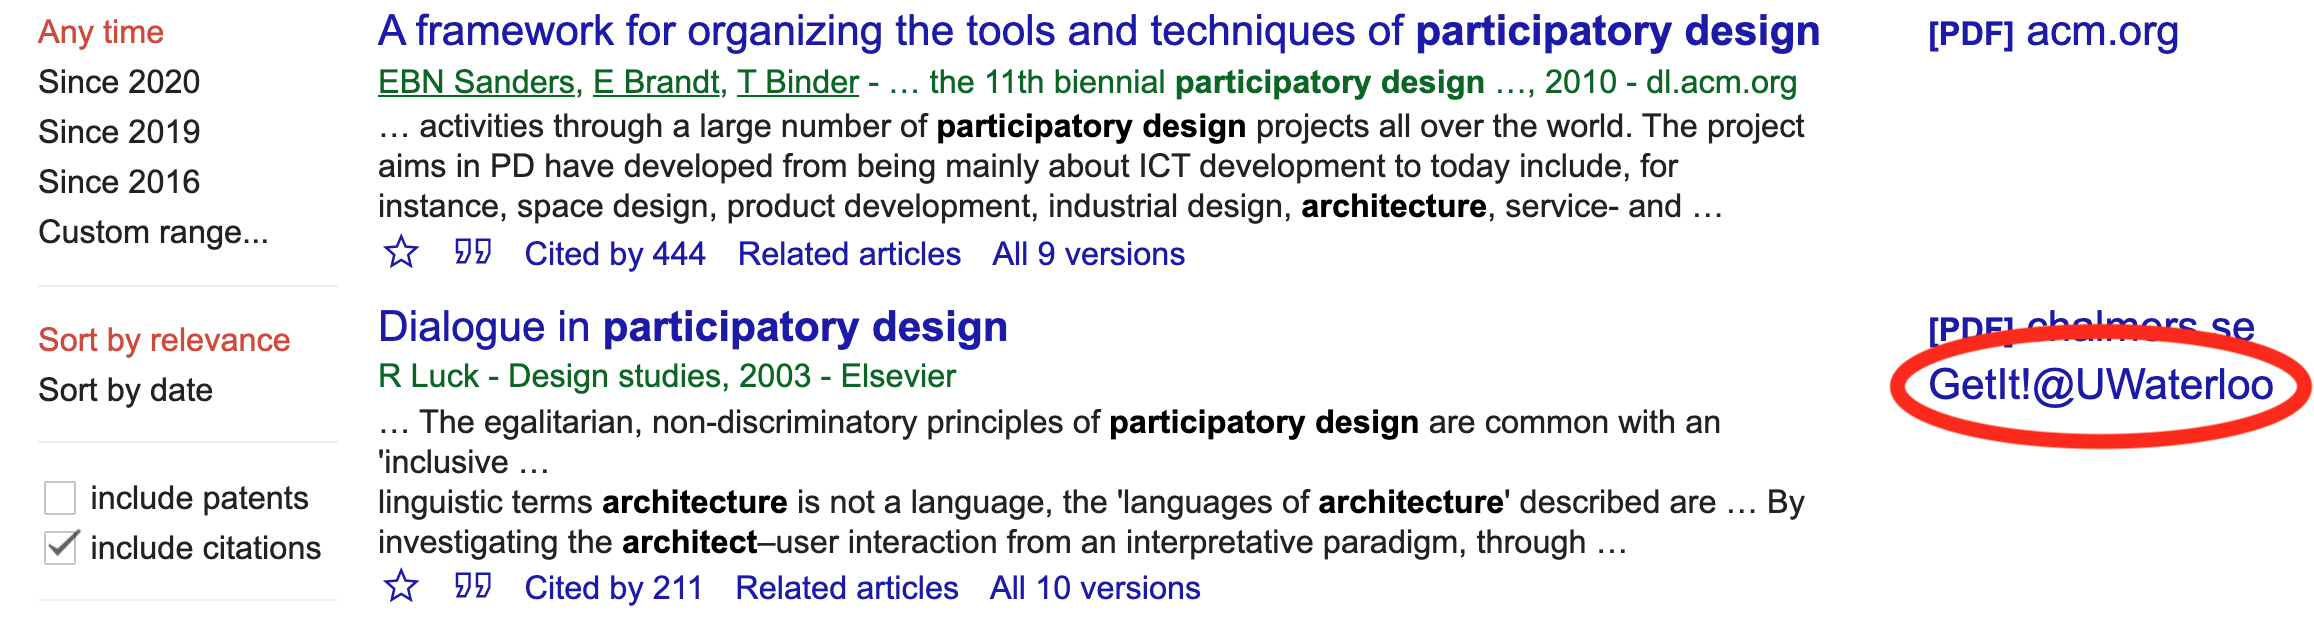 Screenshot of Google Scholar results showing article with 'GetIt!@UWaterloo' link